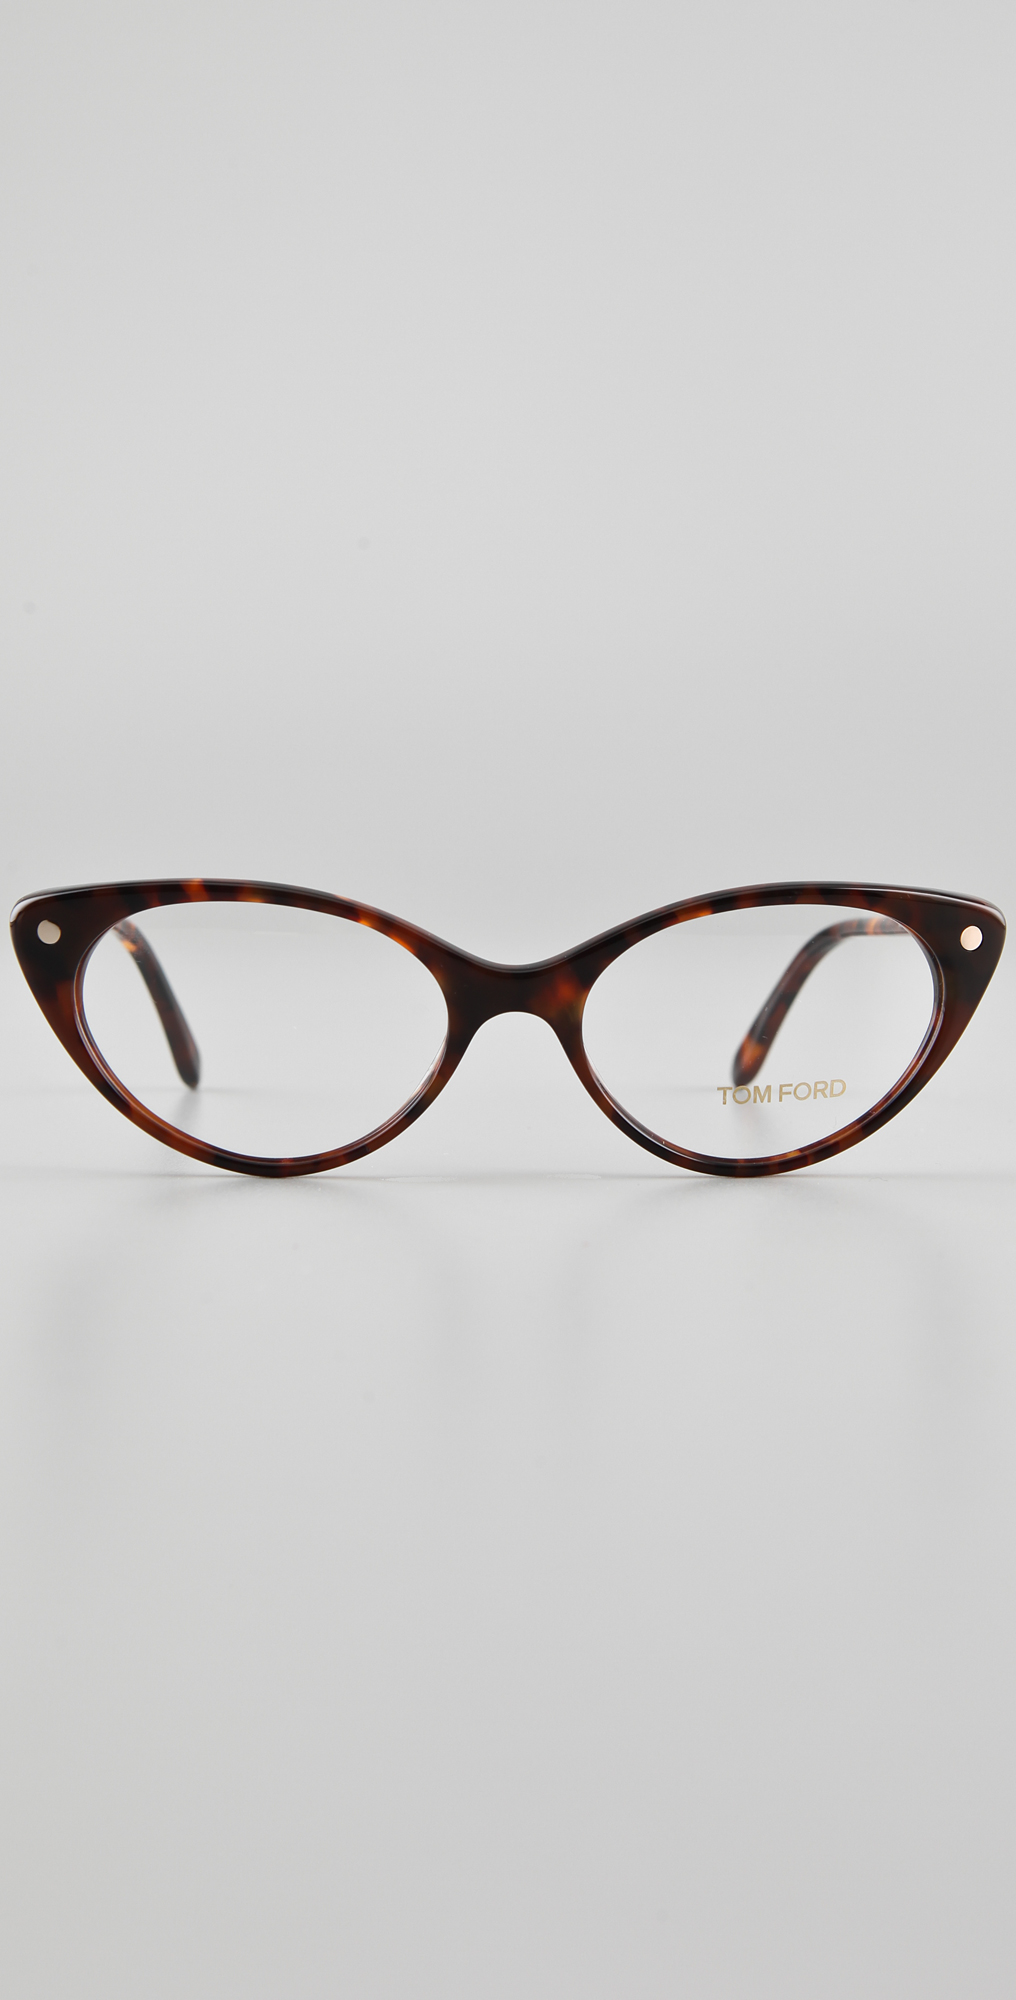 744d069a6d1 Tom Ford Eyewear Cat Eye Glasses